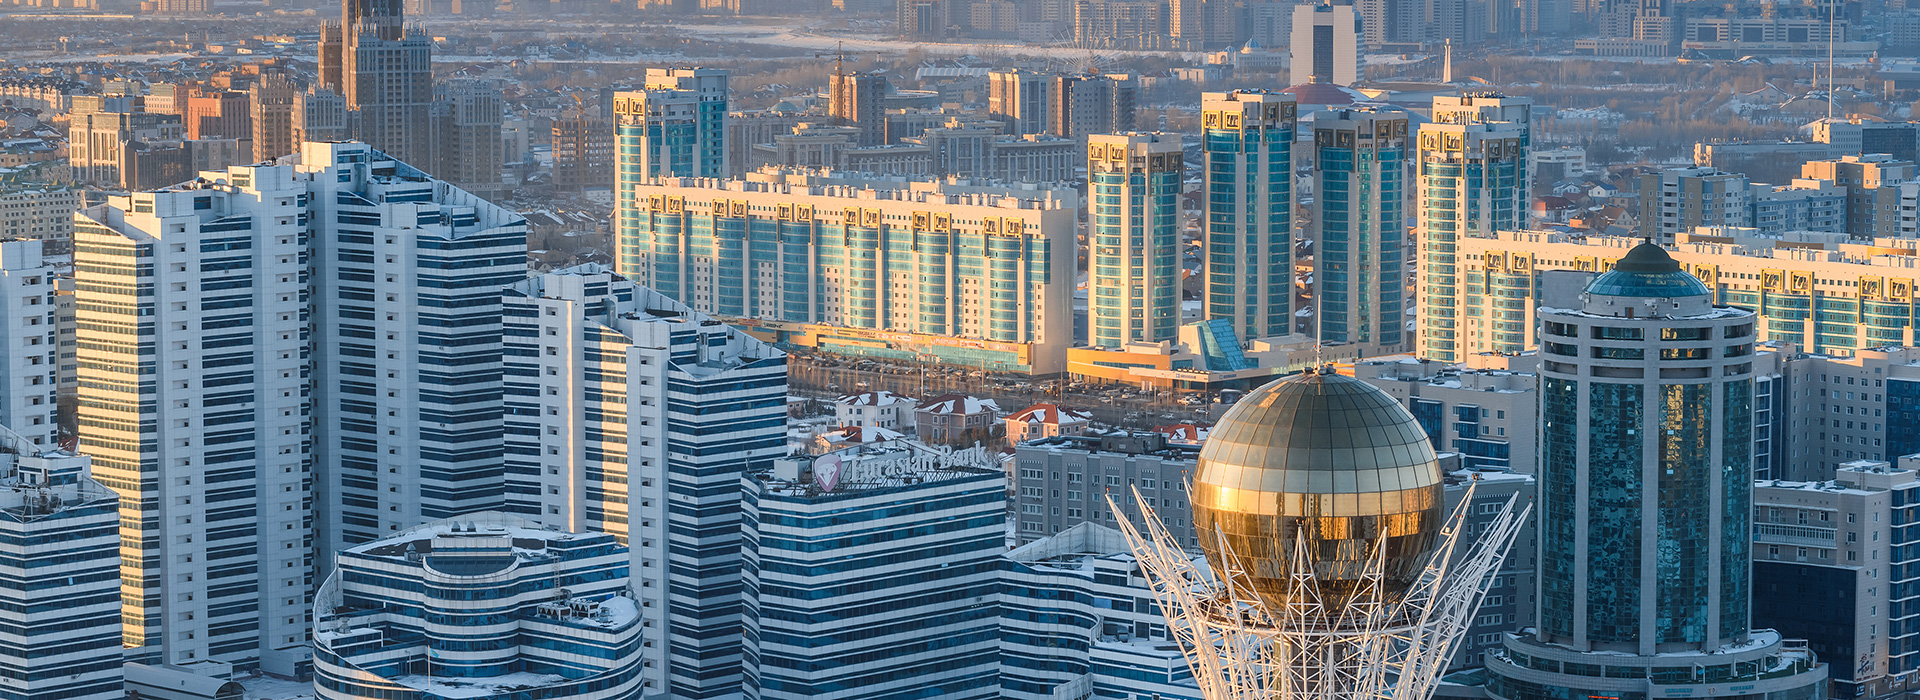 We Build Solution Astana, Kasachstan